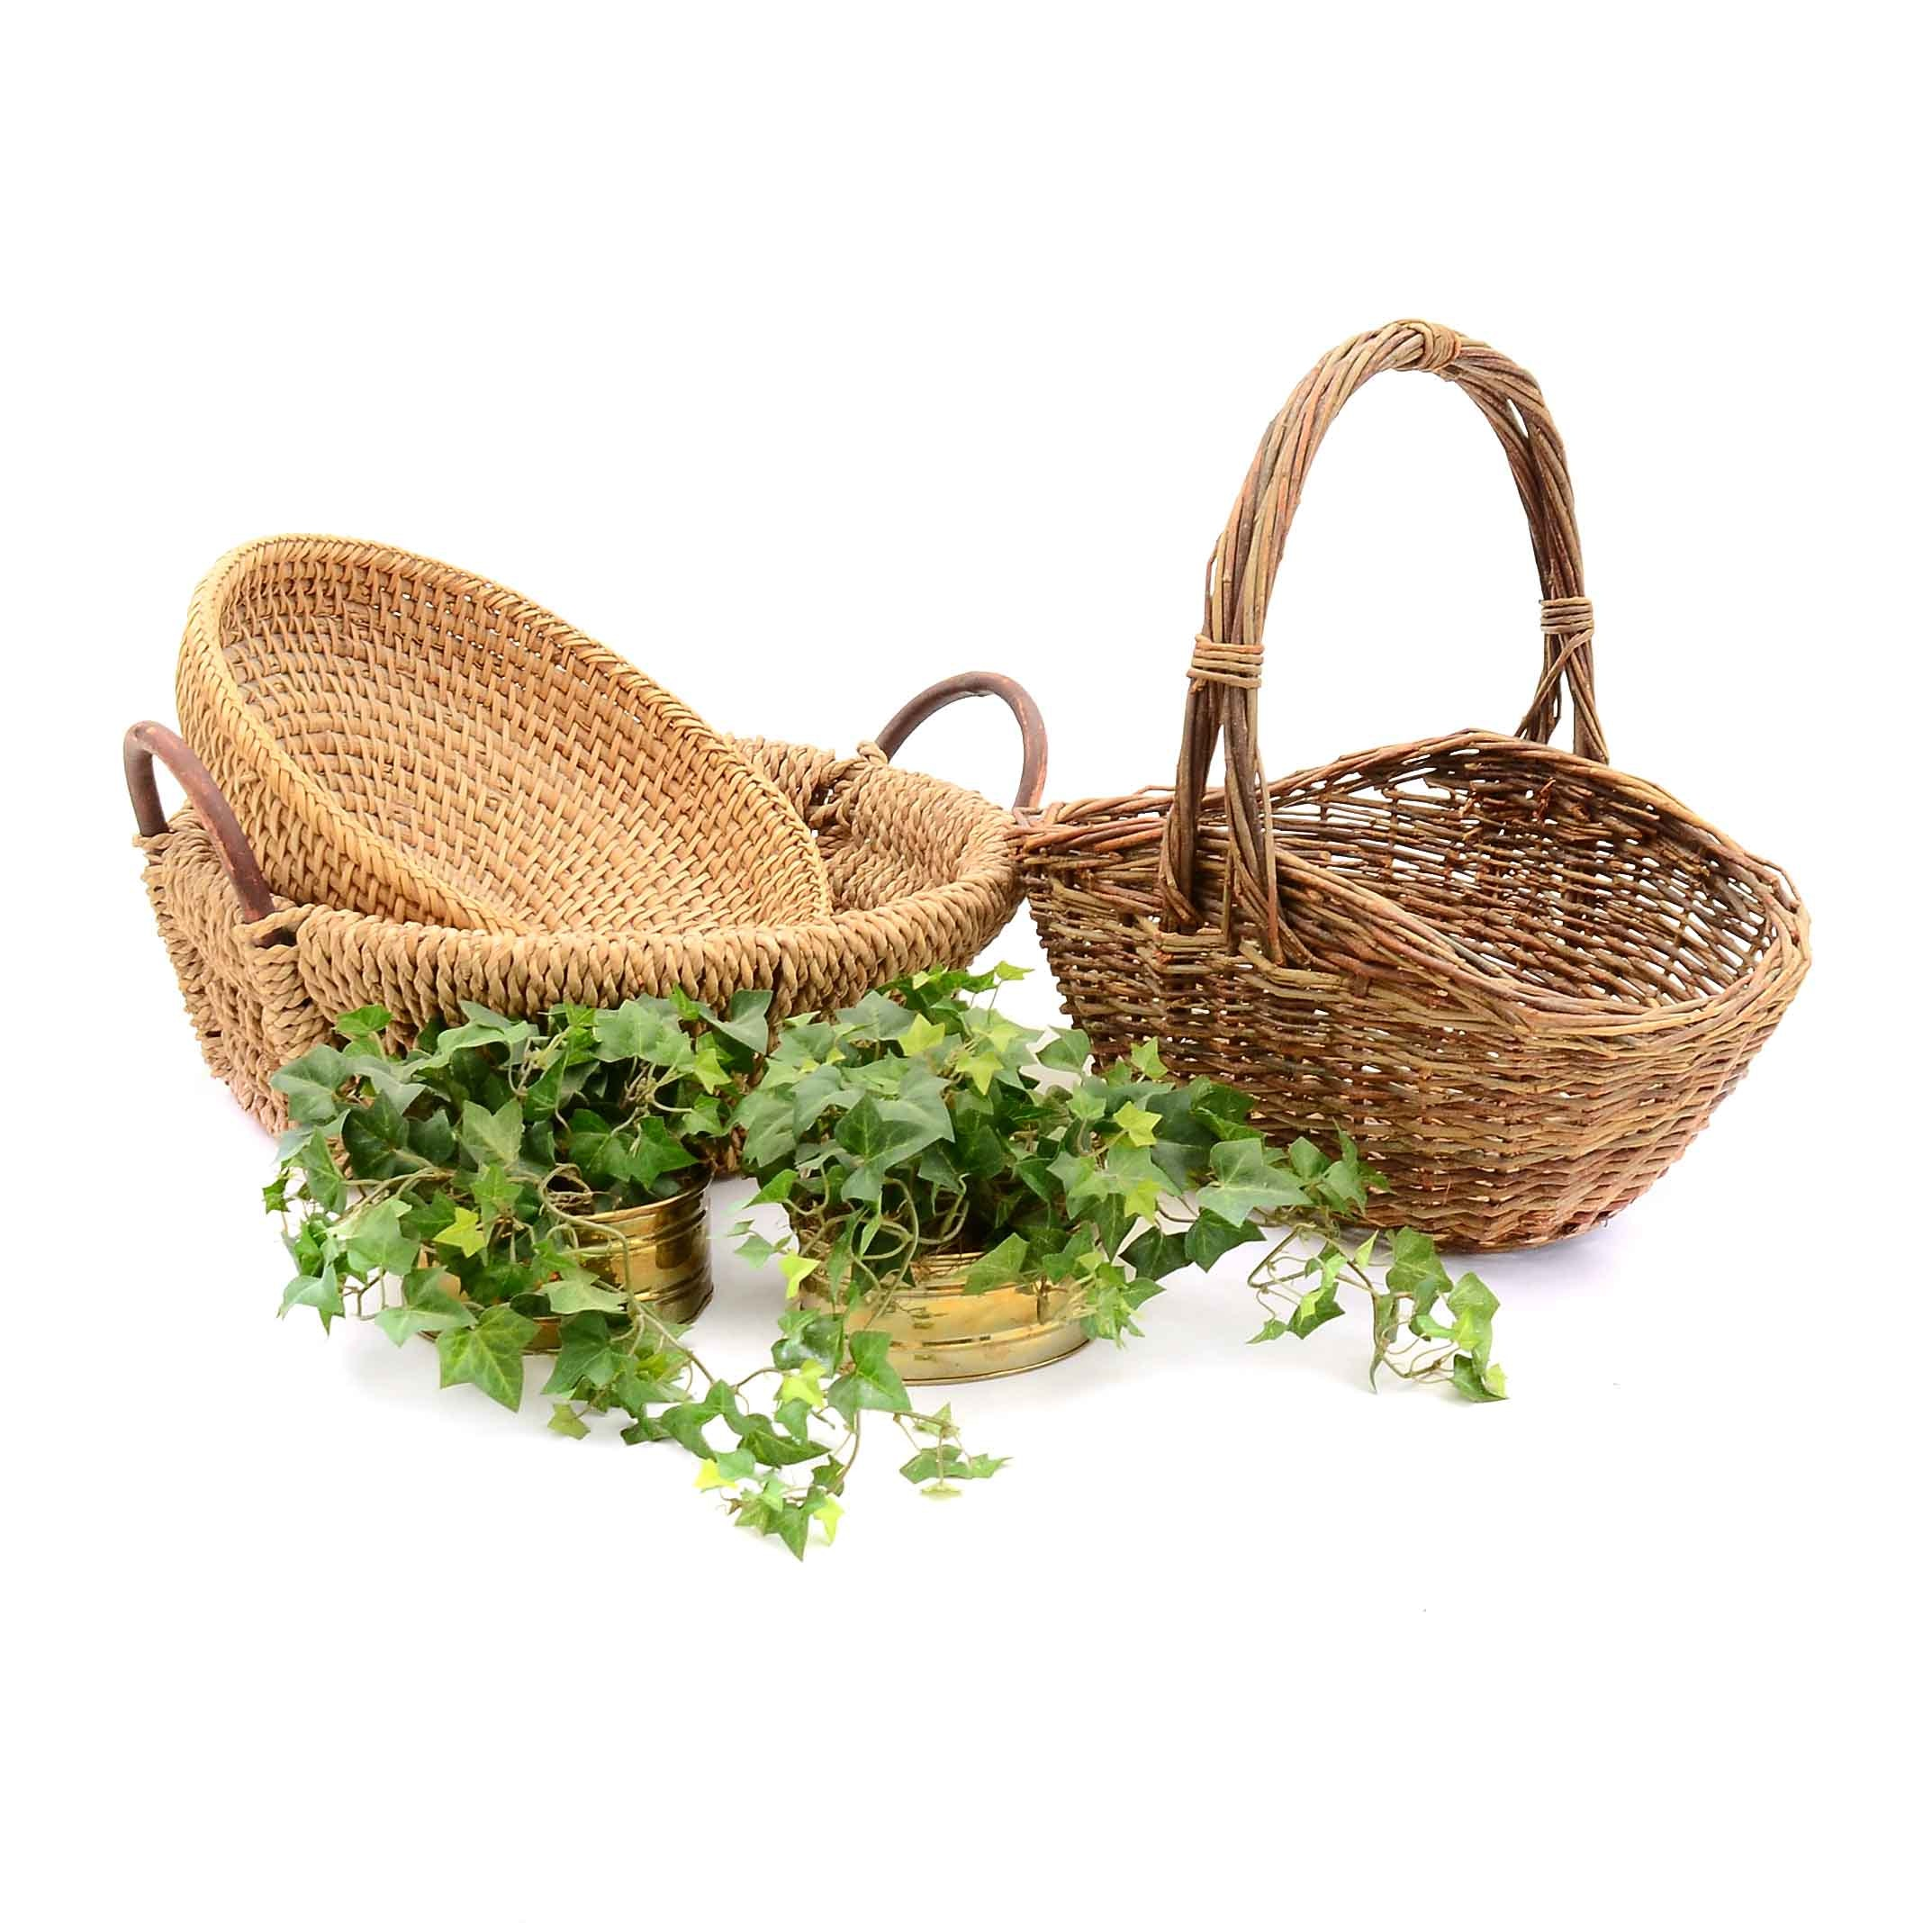 Assorted Baskets and Decor